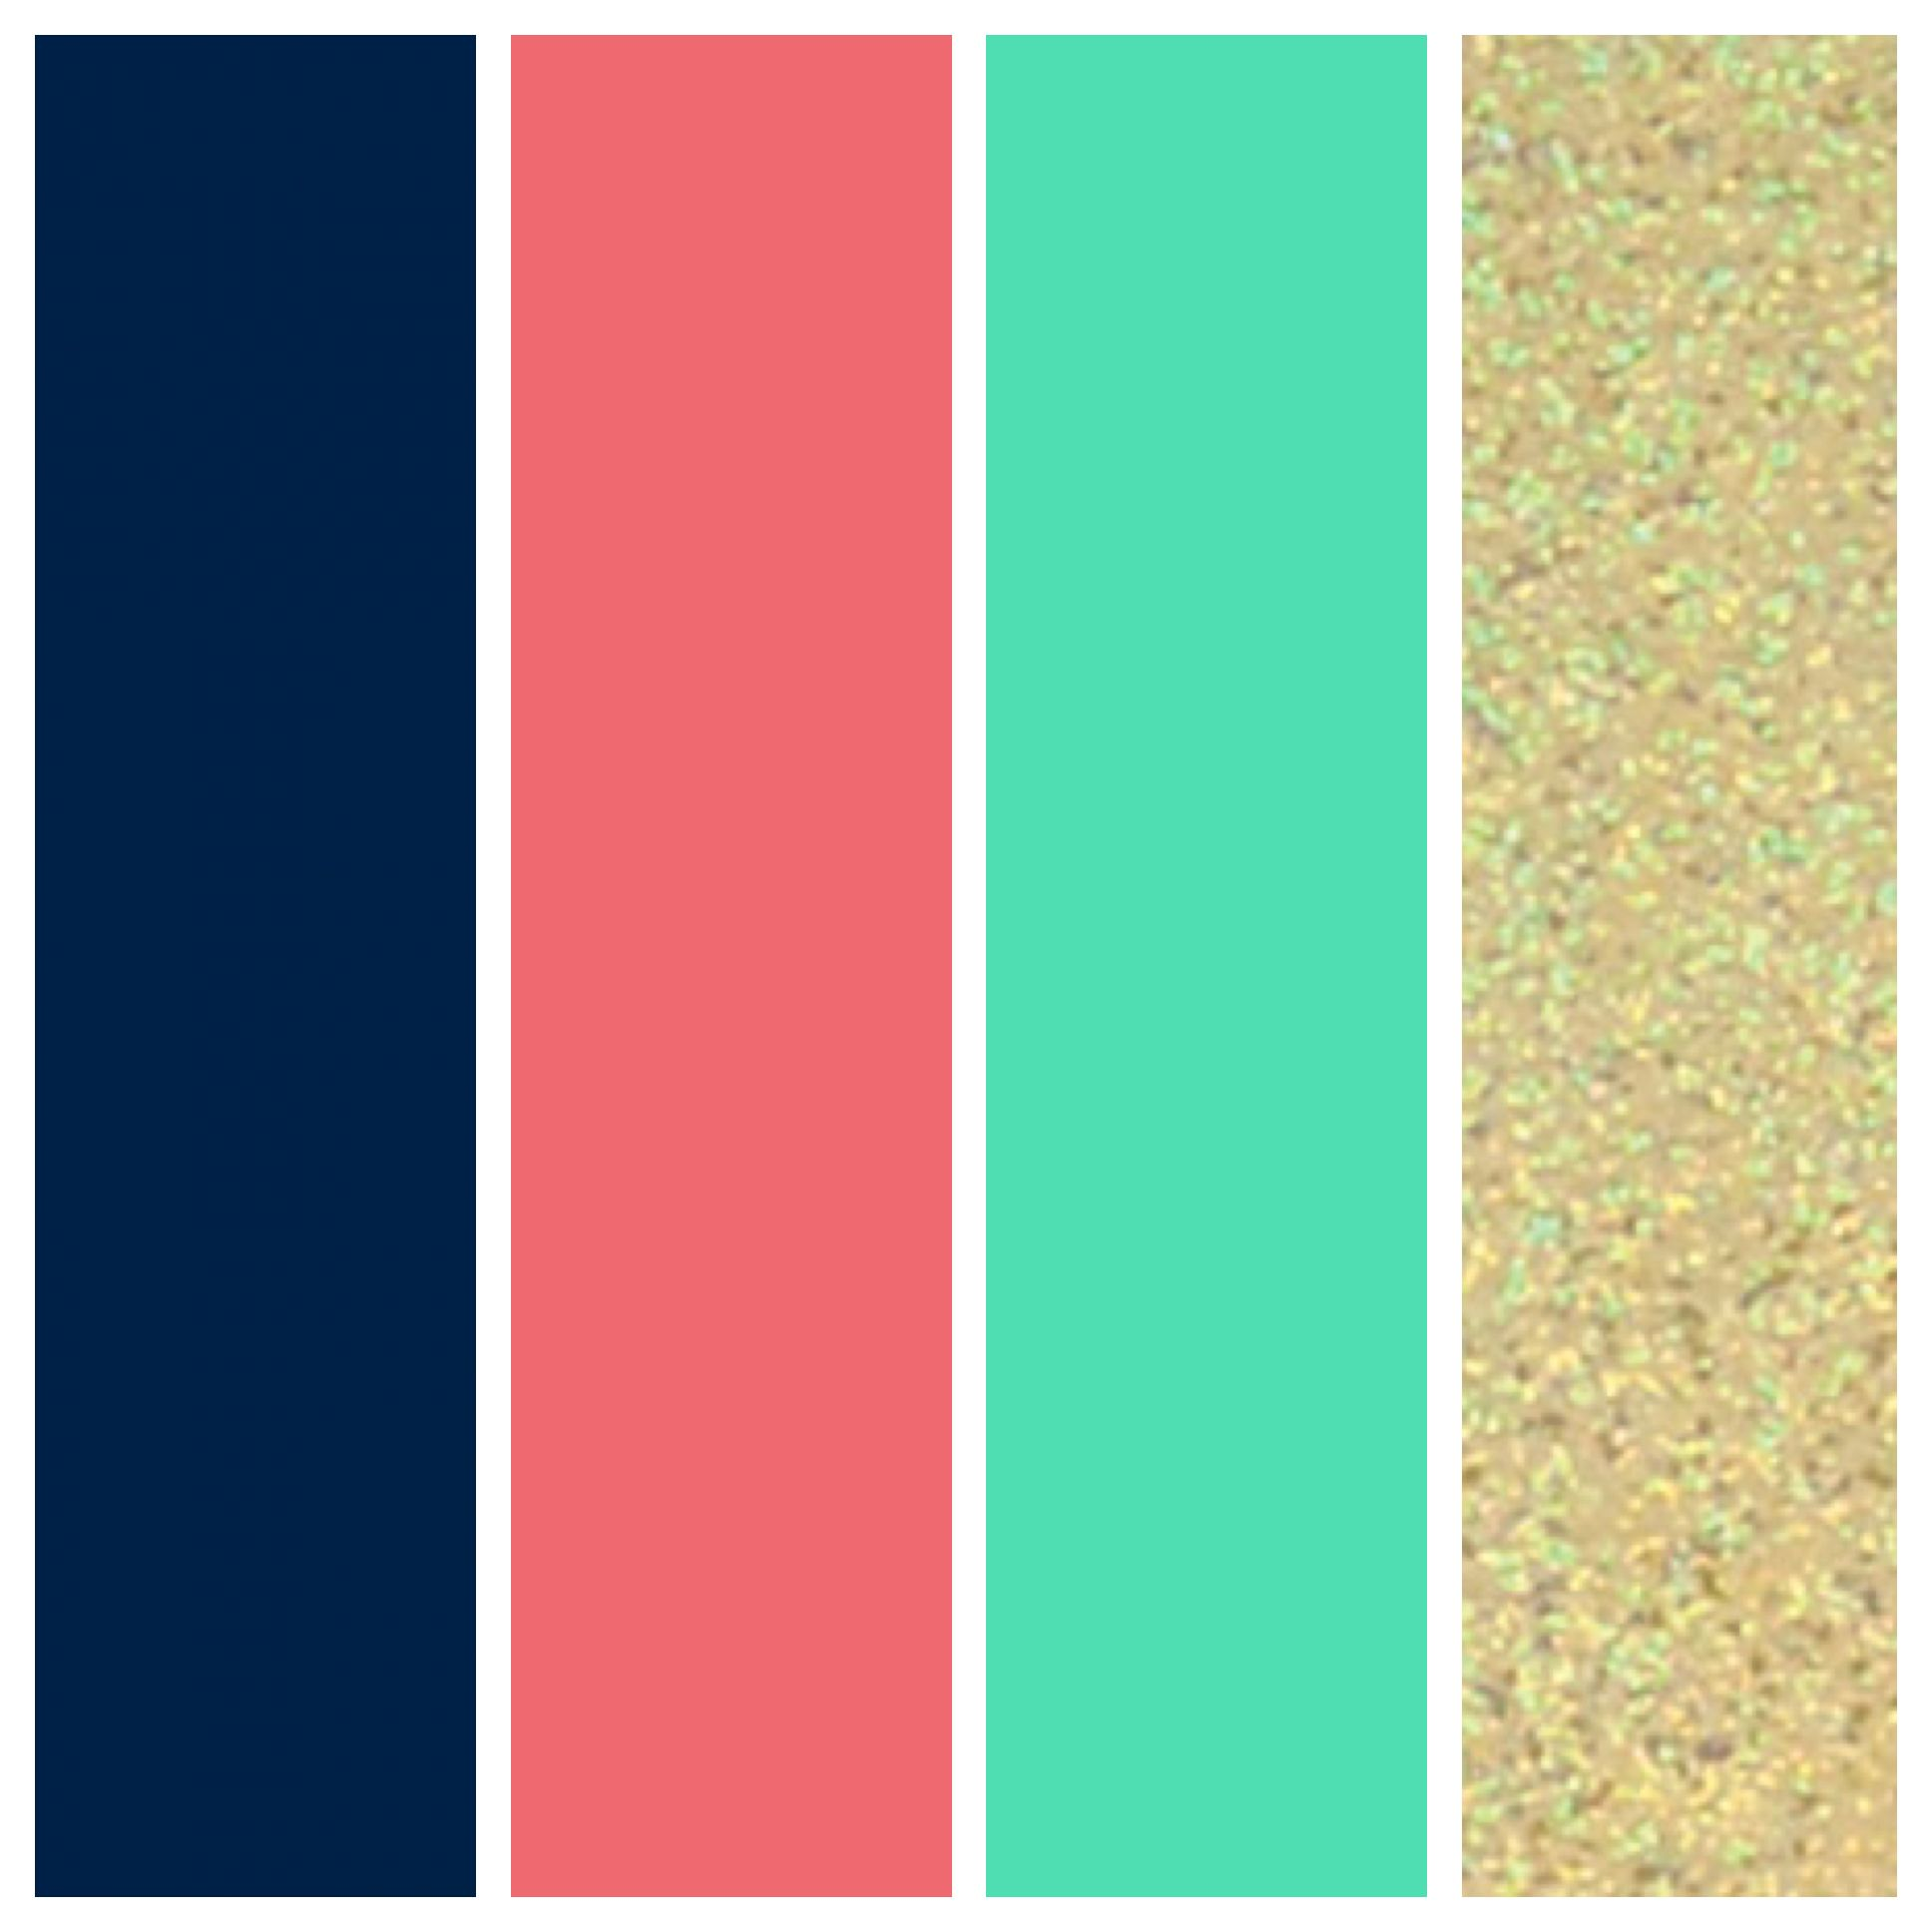 Wedding Color Palette. Navy, Coral, Seafoam, and Gold ...